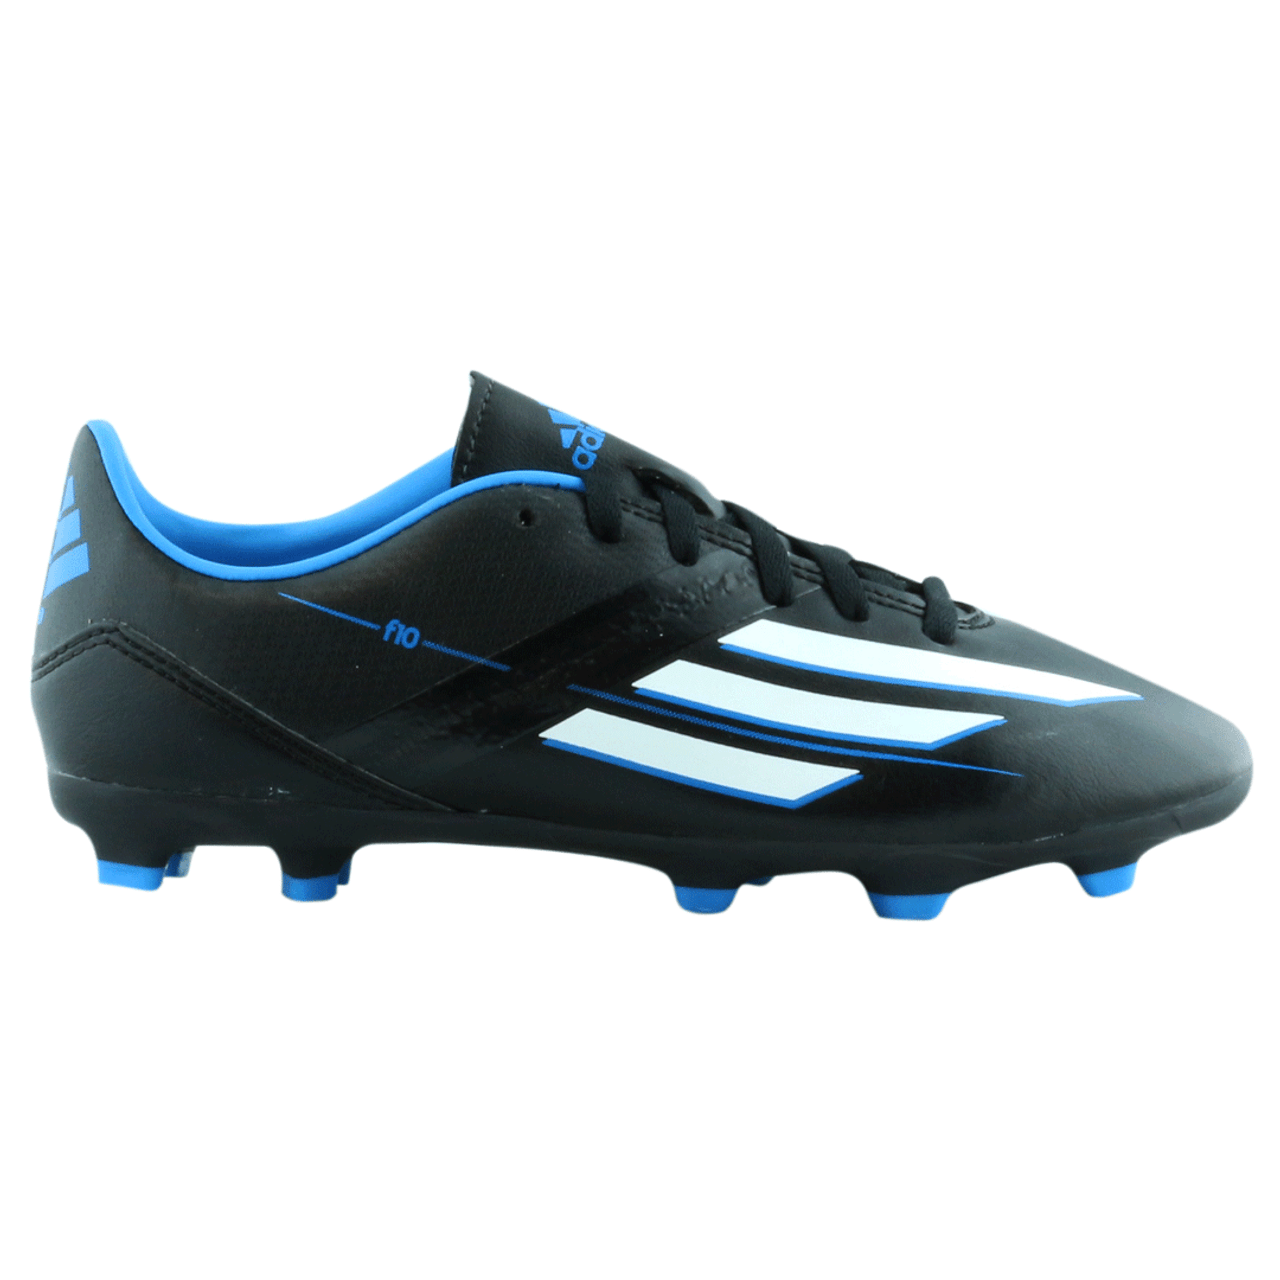 Adidas F10 TRX FG Youth Rugby Boots